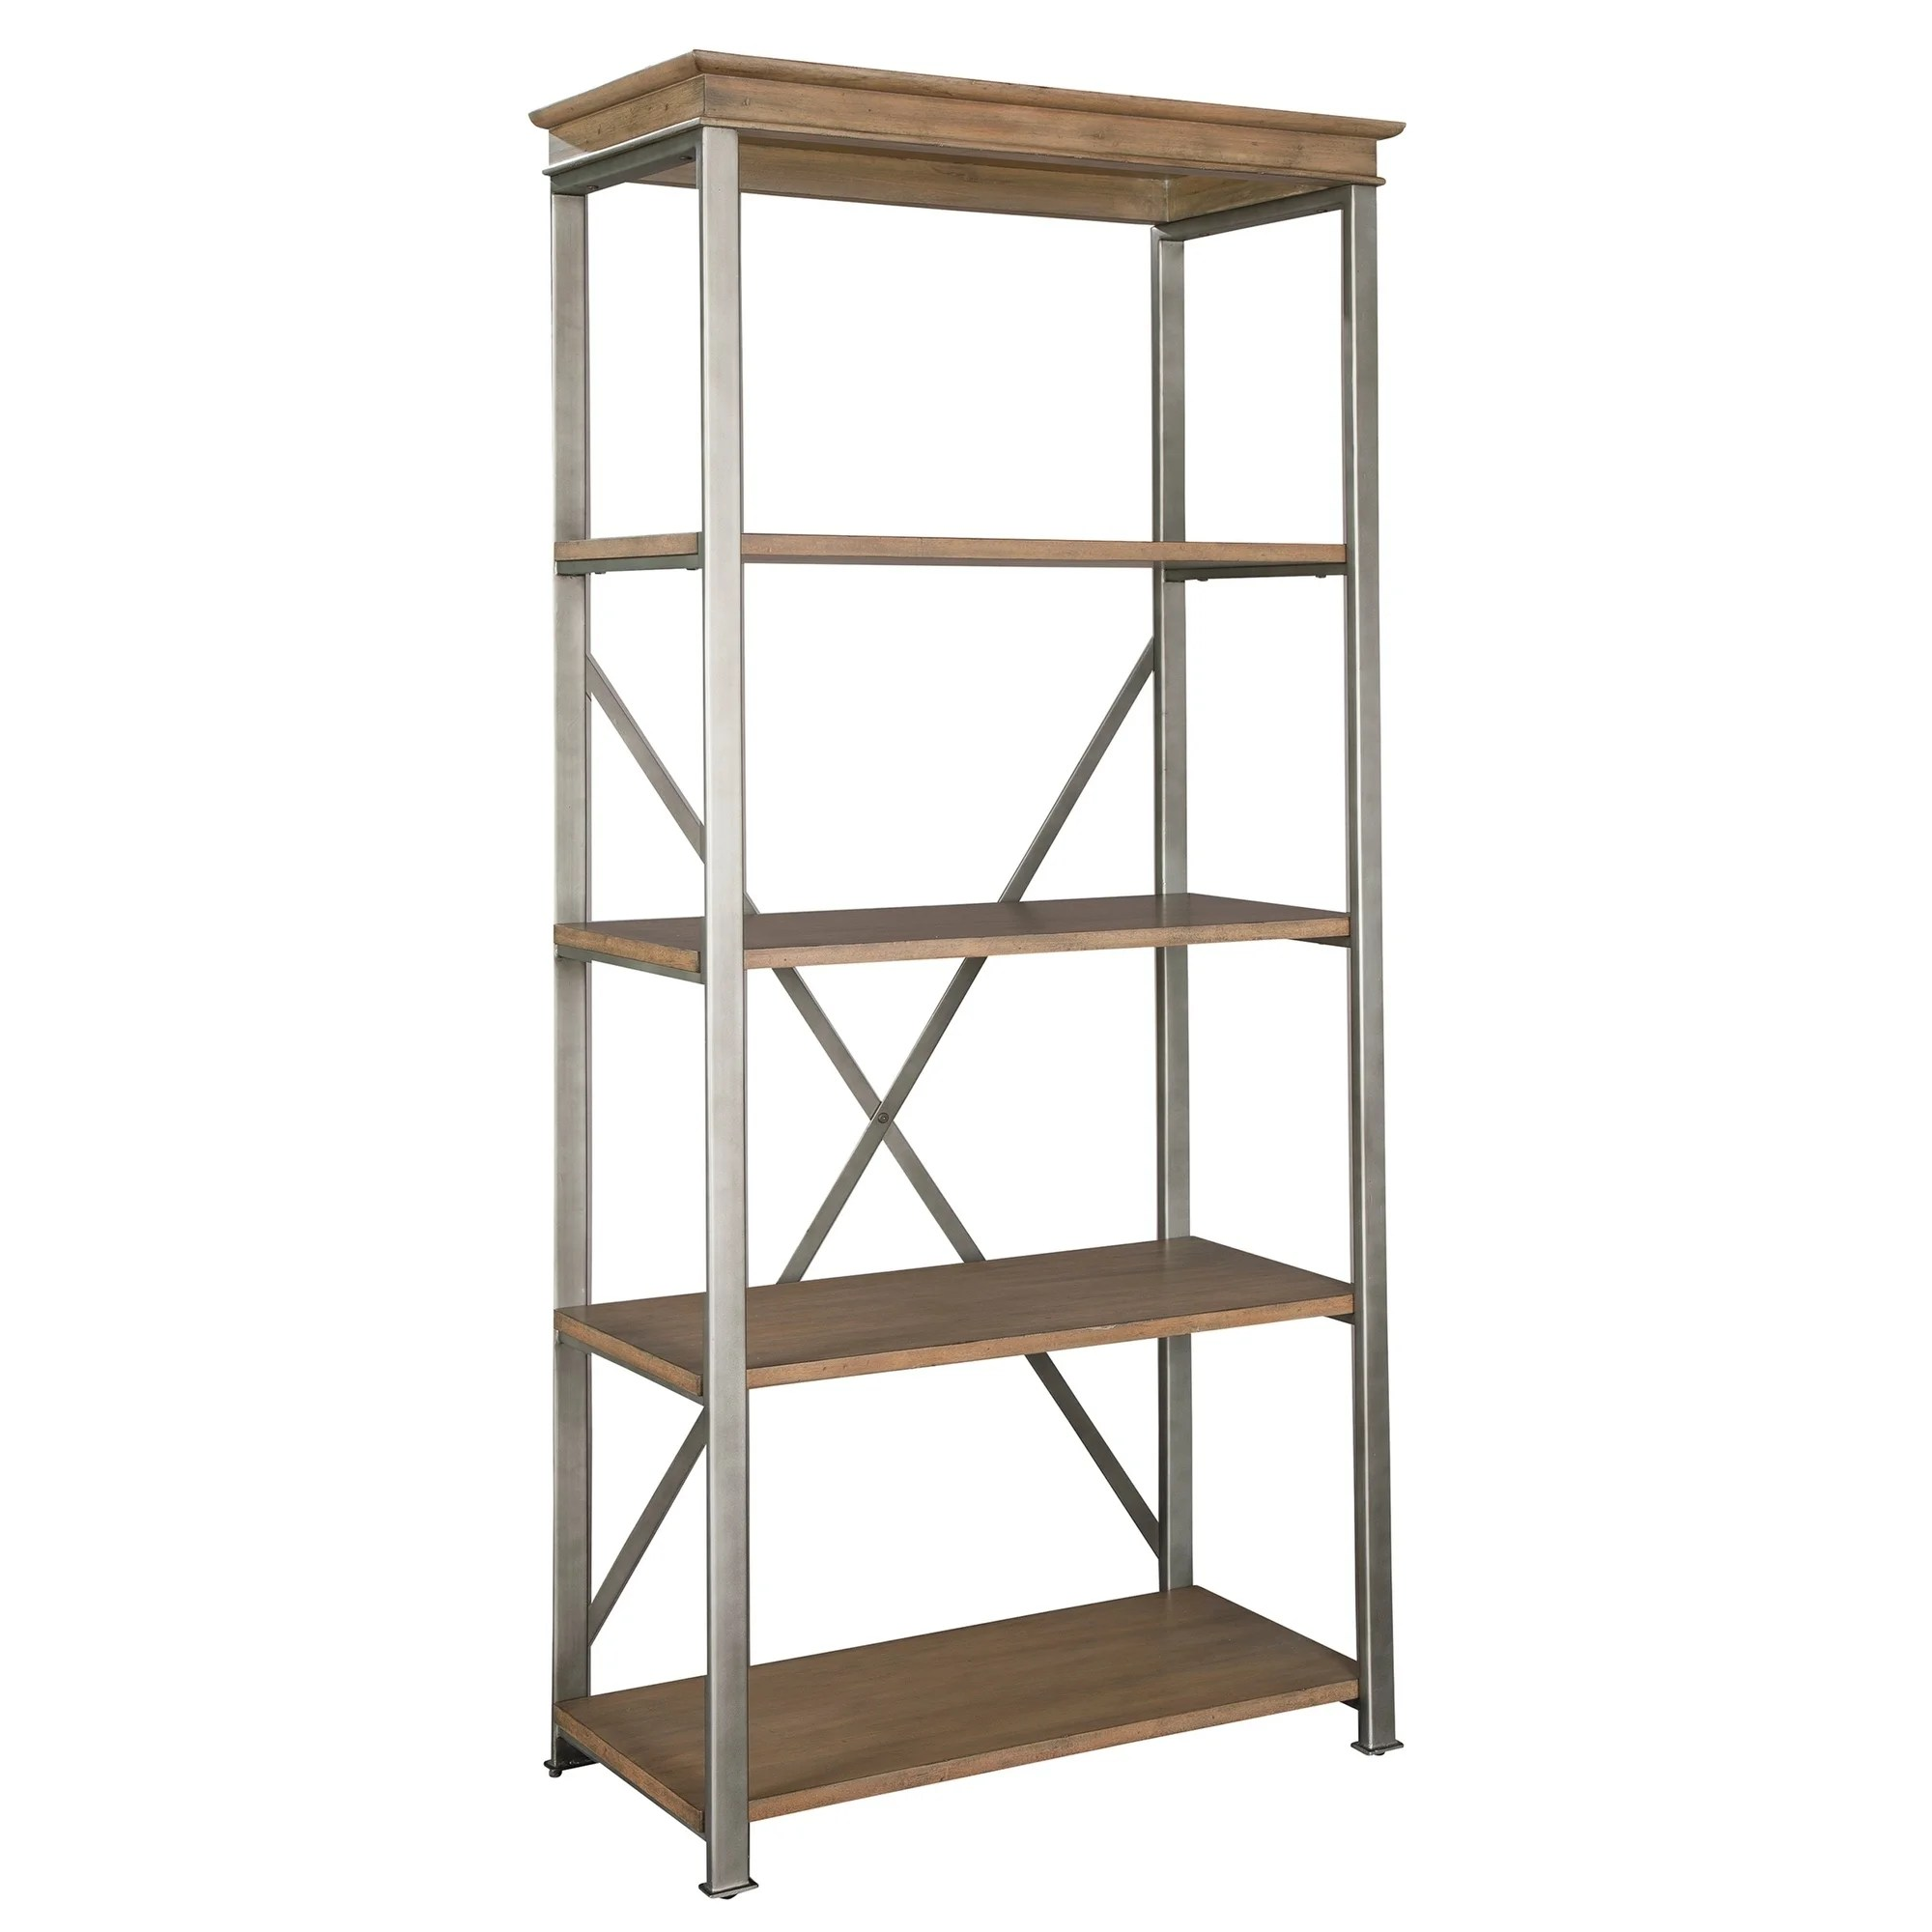 Libreros Madera Office At Home Libreros De Madera Industrial Style Antique Finished Tall 5 Shelf Media Bookshelf Bookcase